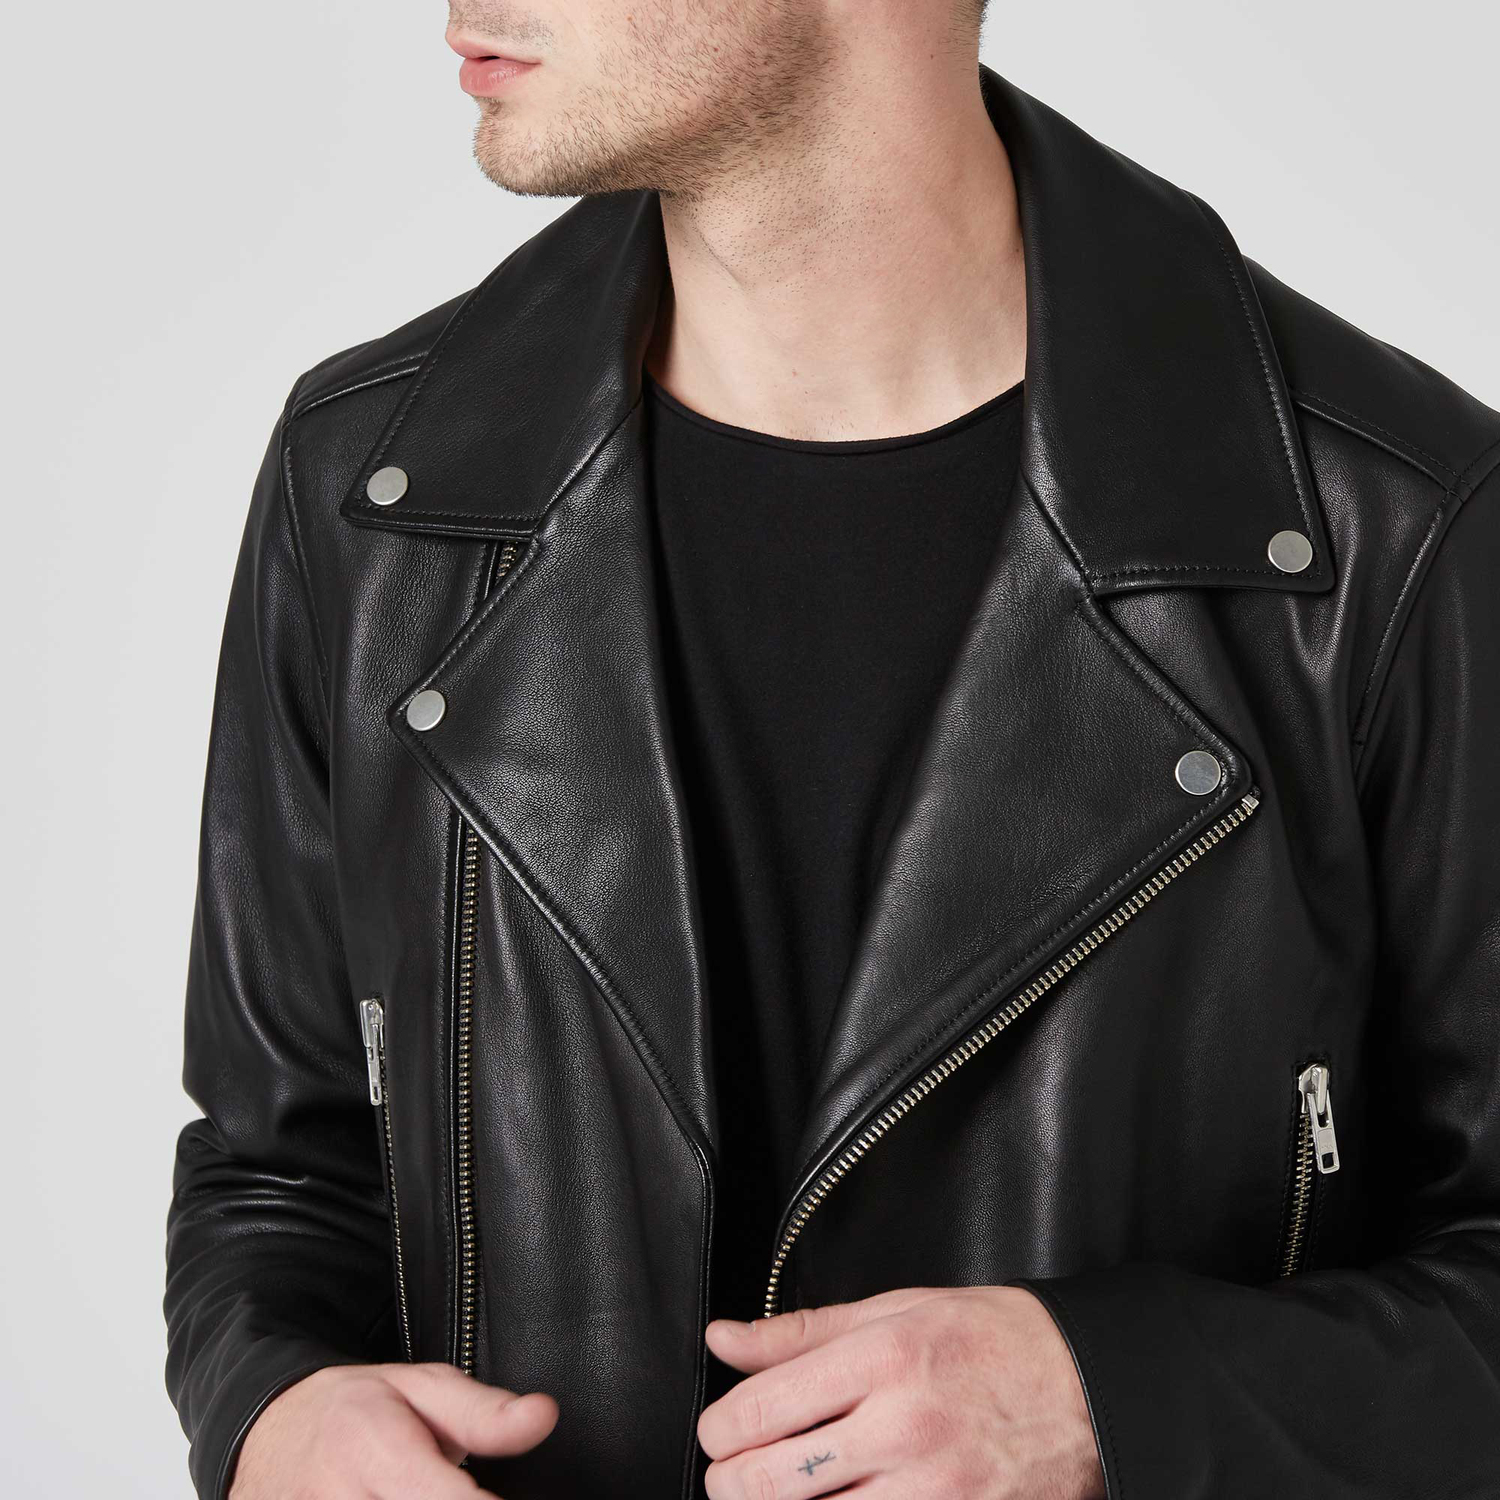 fea99f9e4e Mens Leather Moto Jacket In Black $400 | DSTLD